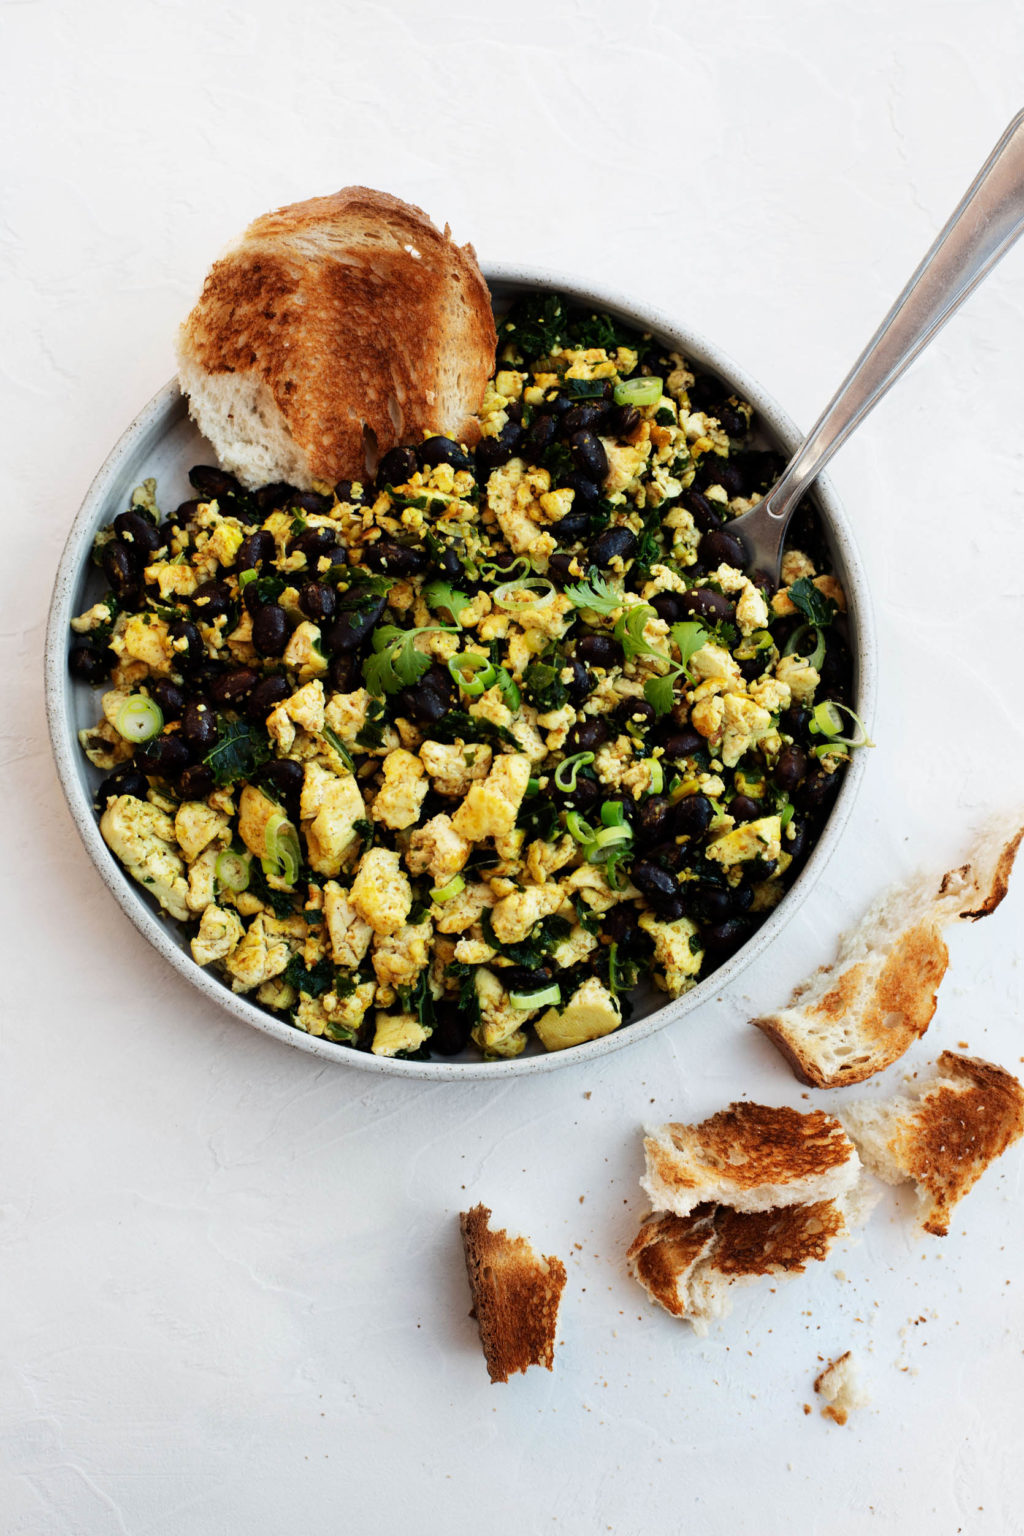 A round plate is filled with a black bean tofu scramble, made with chopped scallions and accompanied by small pieces of toast.